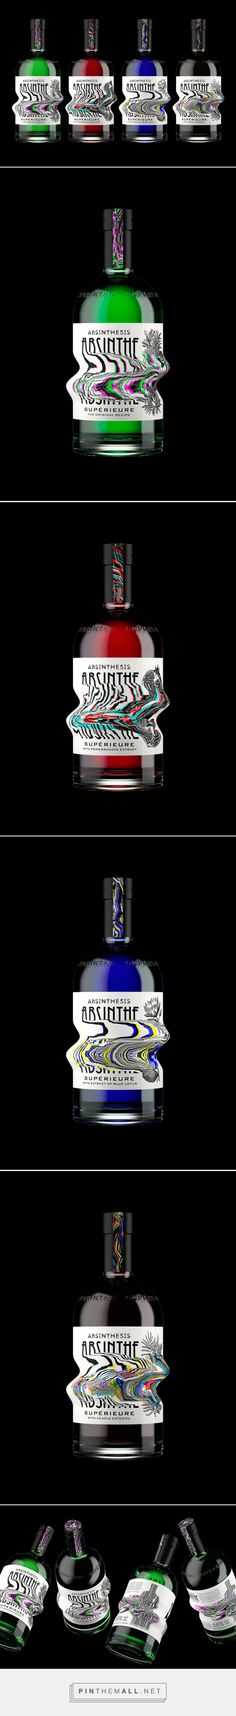 Branding and packaging for ABSINTHESIS. Absinthe Supérieure on Behance by Yevgeny Razumov Moscow, Russian Federation curated by Packaging Diva PD.  Not real packaging but still a cool concept.